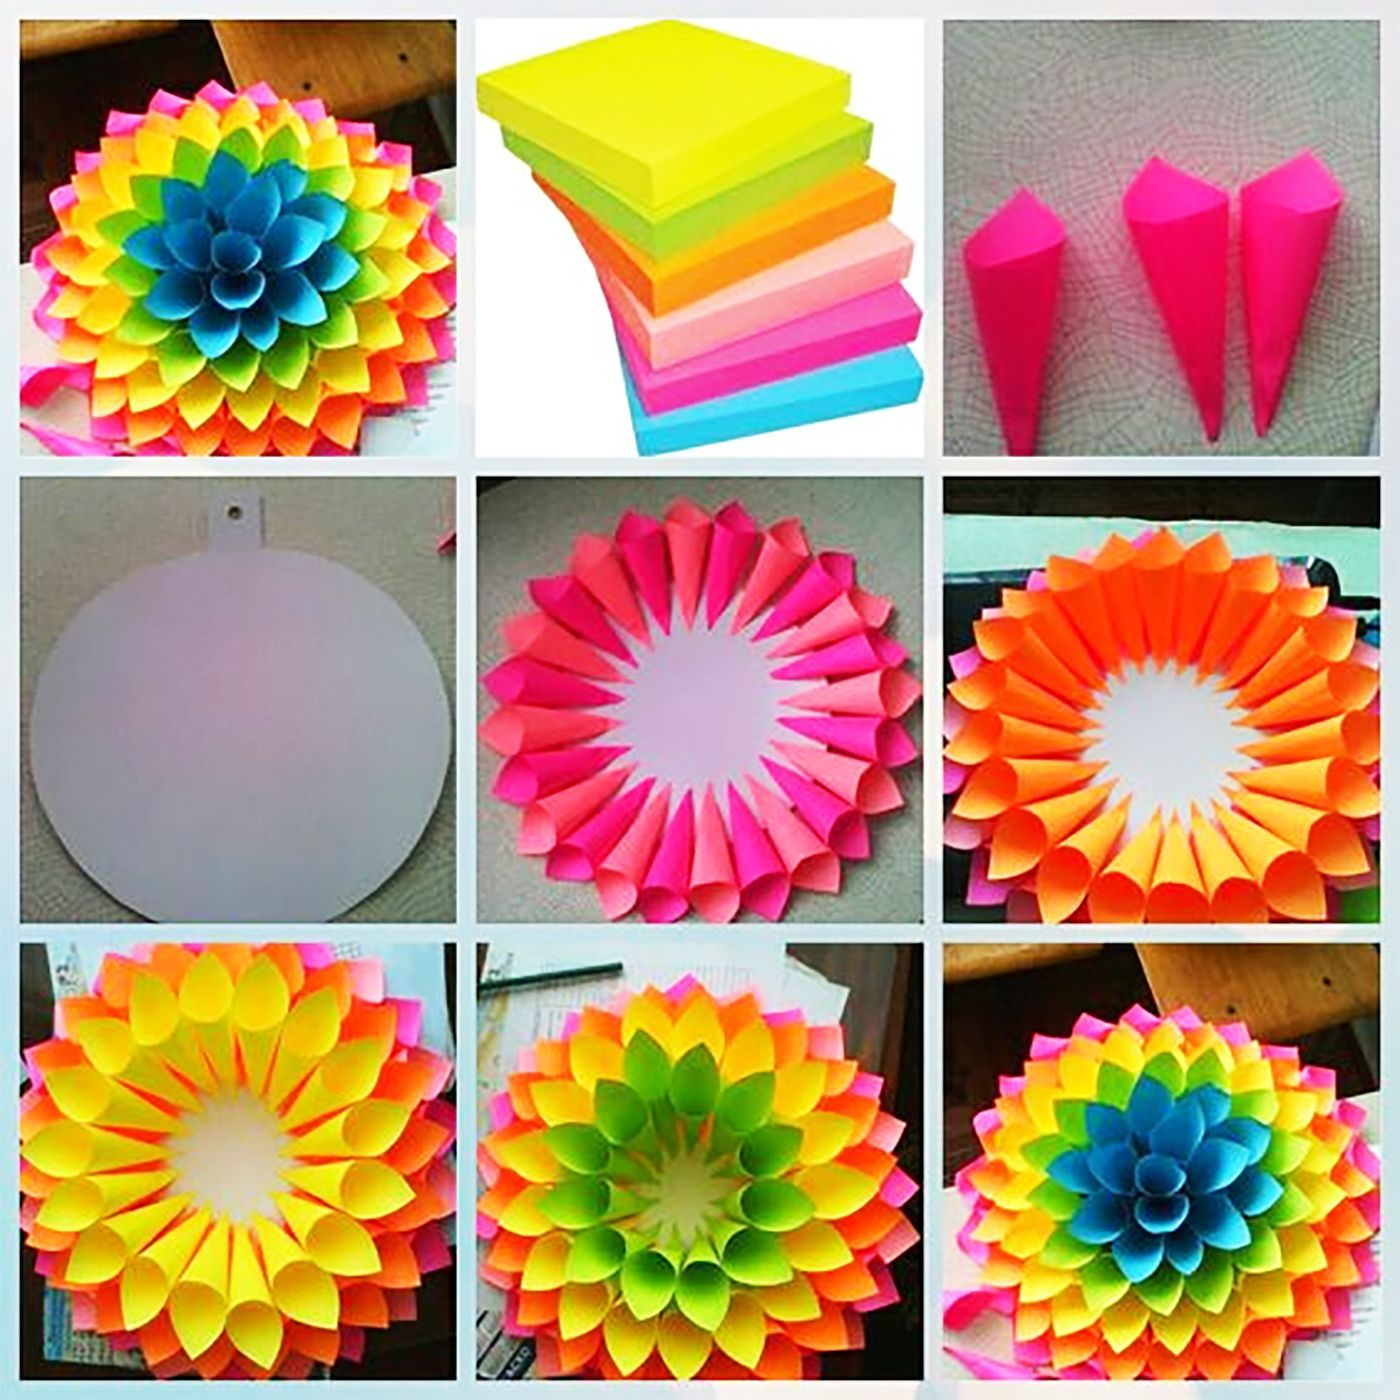 Cute Flower With Little Colorful Papers Paper Flowers Craft Paper Crafts Diy Paper Crafts